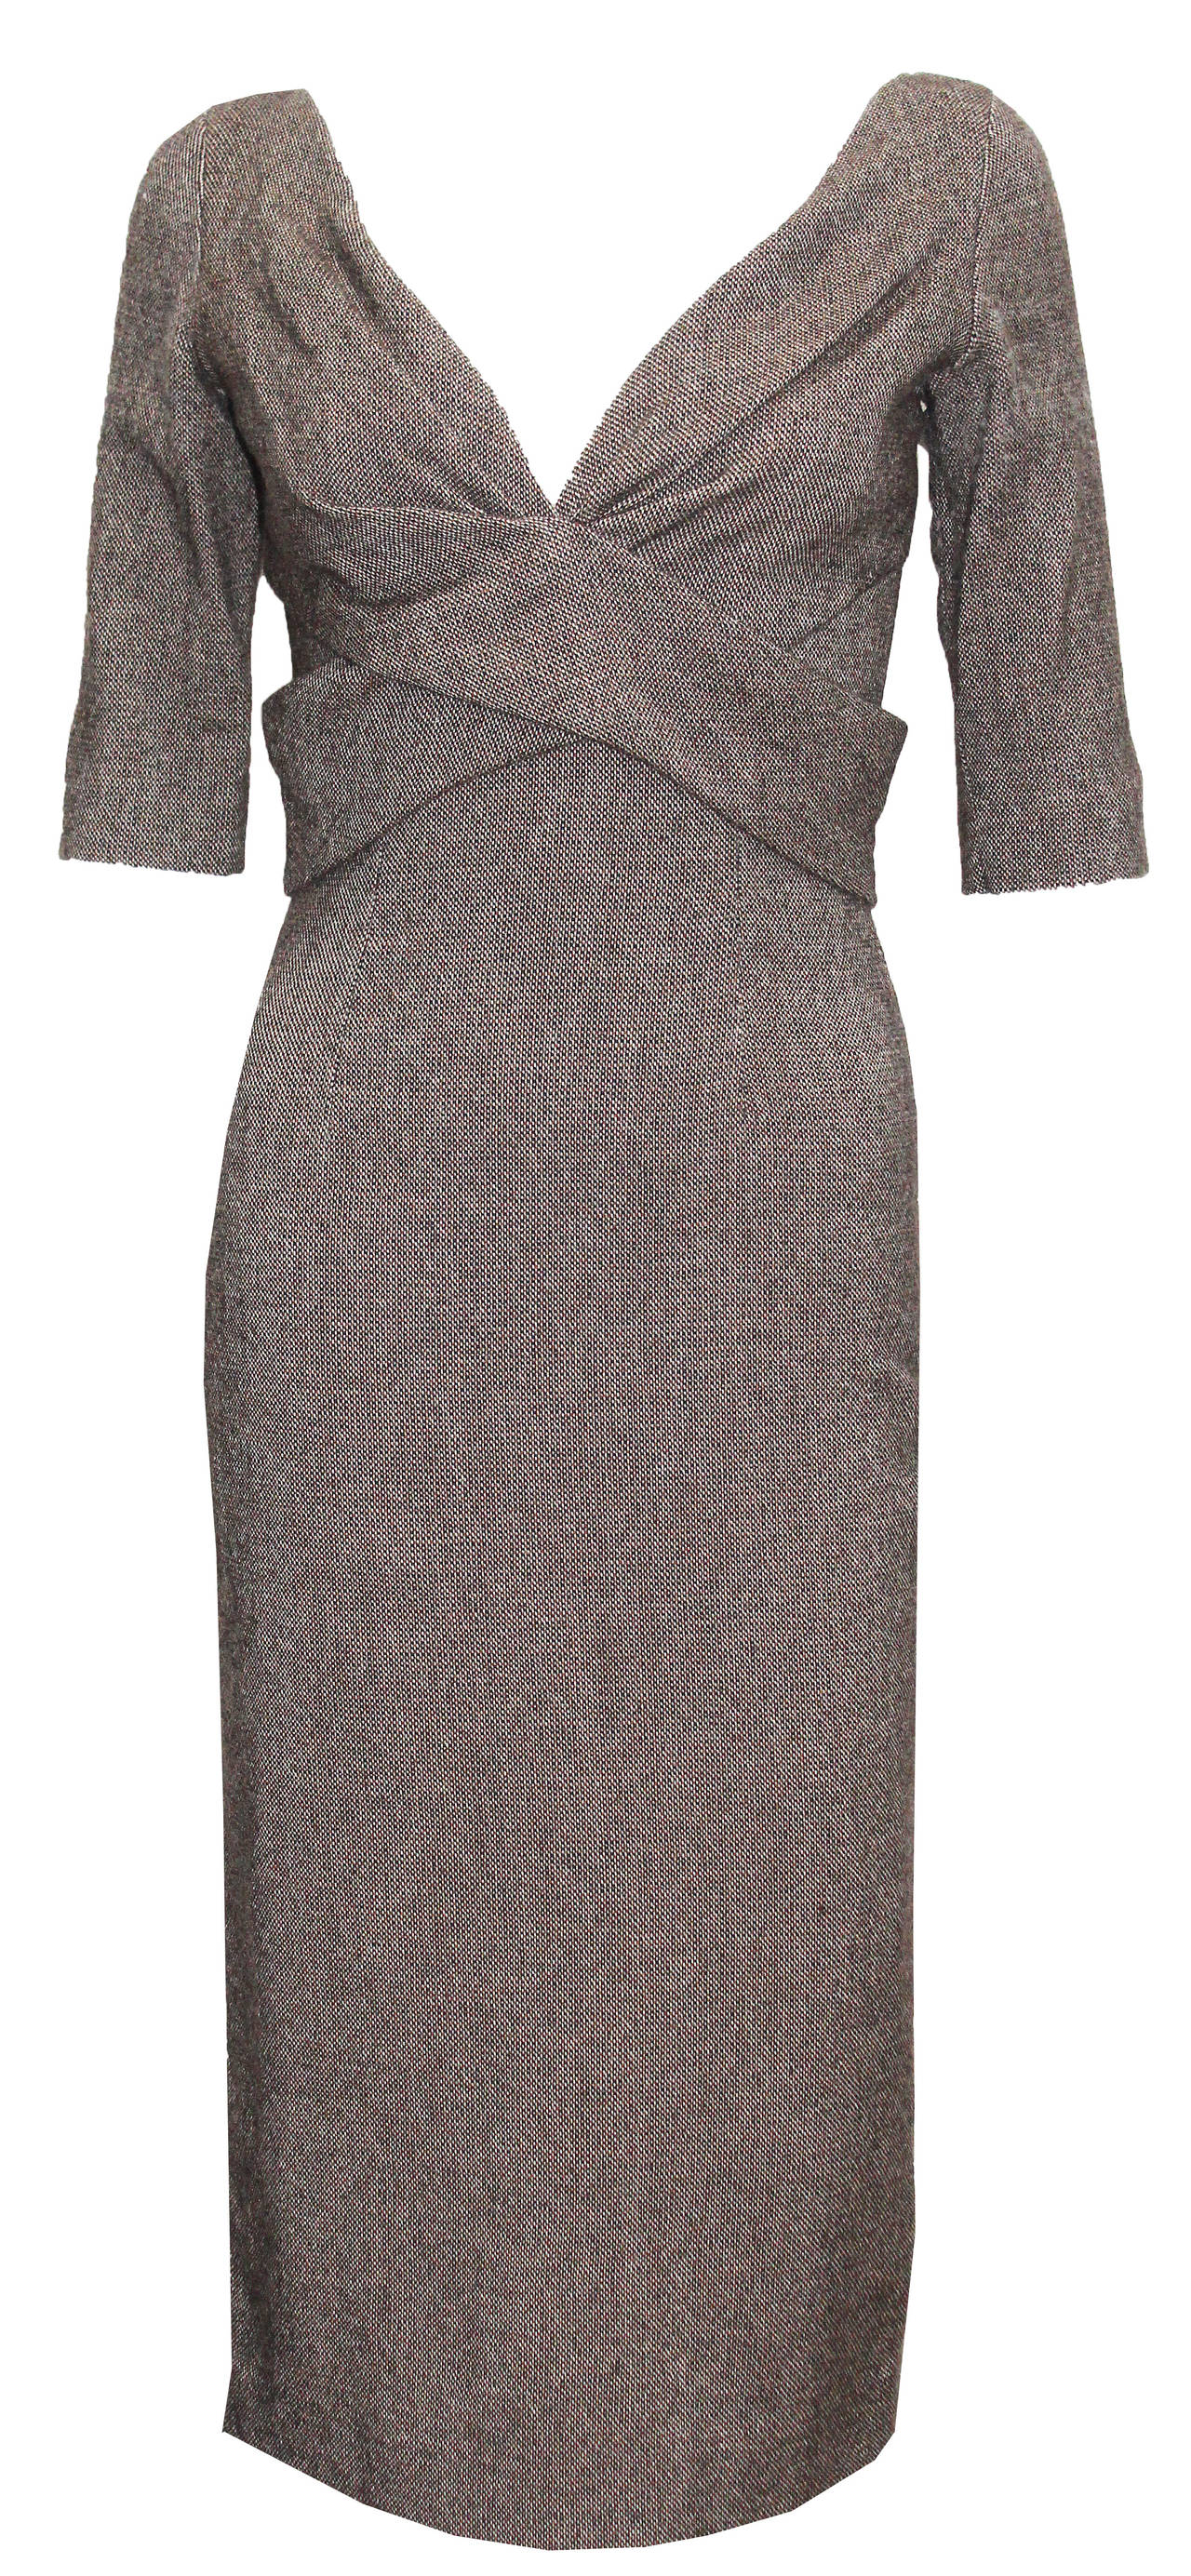 Gray Alexander McQueen Runway Pin-up 50s inspired dress (Autumn/Winter 2005) For Sale